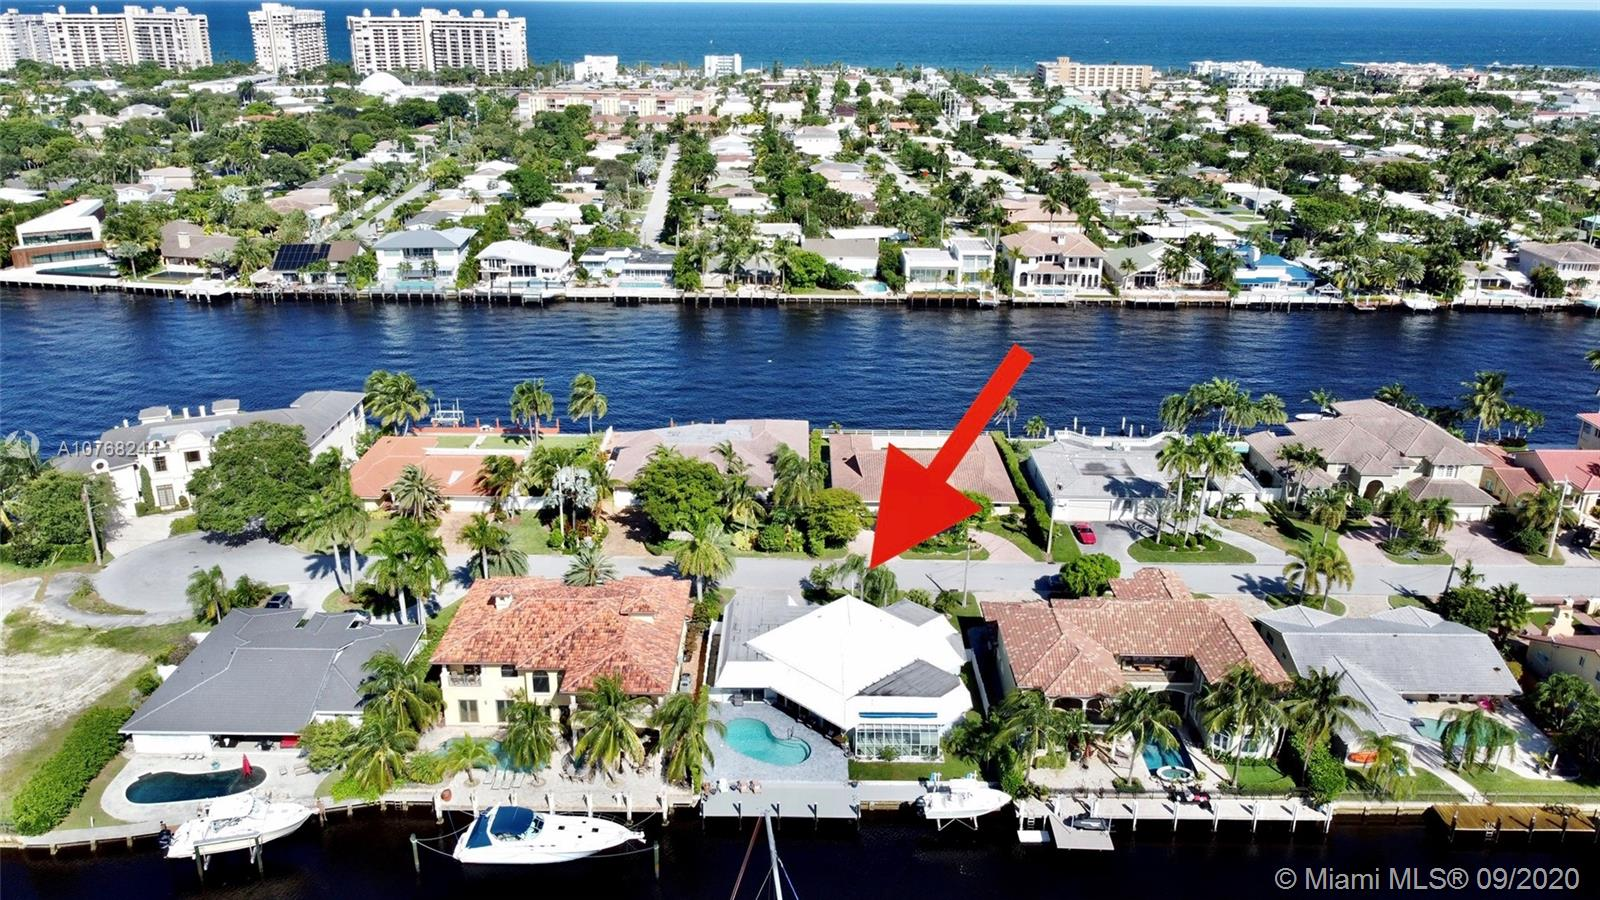 Stunning waterfront home with too many upgrades to list. This waterfront stunner is an entertainers dream come true. Open floor plan, updated custom kitchen, new flooring (24 x 24 marble - kitchen, living & dining)Hunter Douglas Silhouettes with room darkening in all bedrooms. Impact windows & Rolladen shutters. Electric outdoor shades for your pool time enjoyment. New custom trex dock, 14 feet wide seawall completely reconstructed to perfect shape. 12,000 pound boat lift. This home basically sits on one of the best streets in the landings feels like you're on an island. Amazing views!!! A must-see will not last!